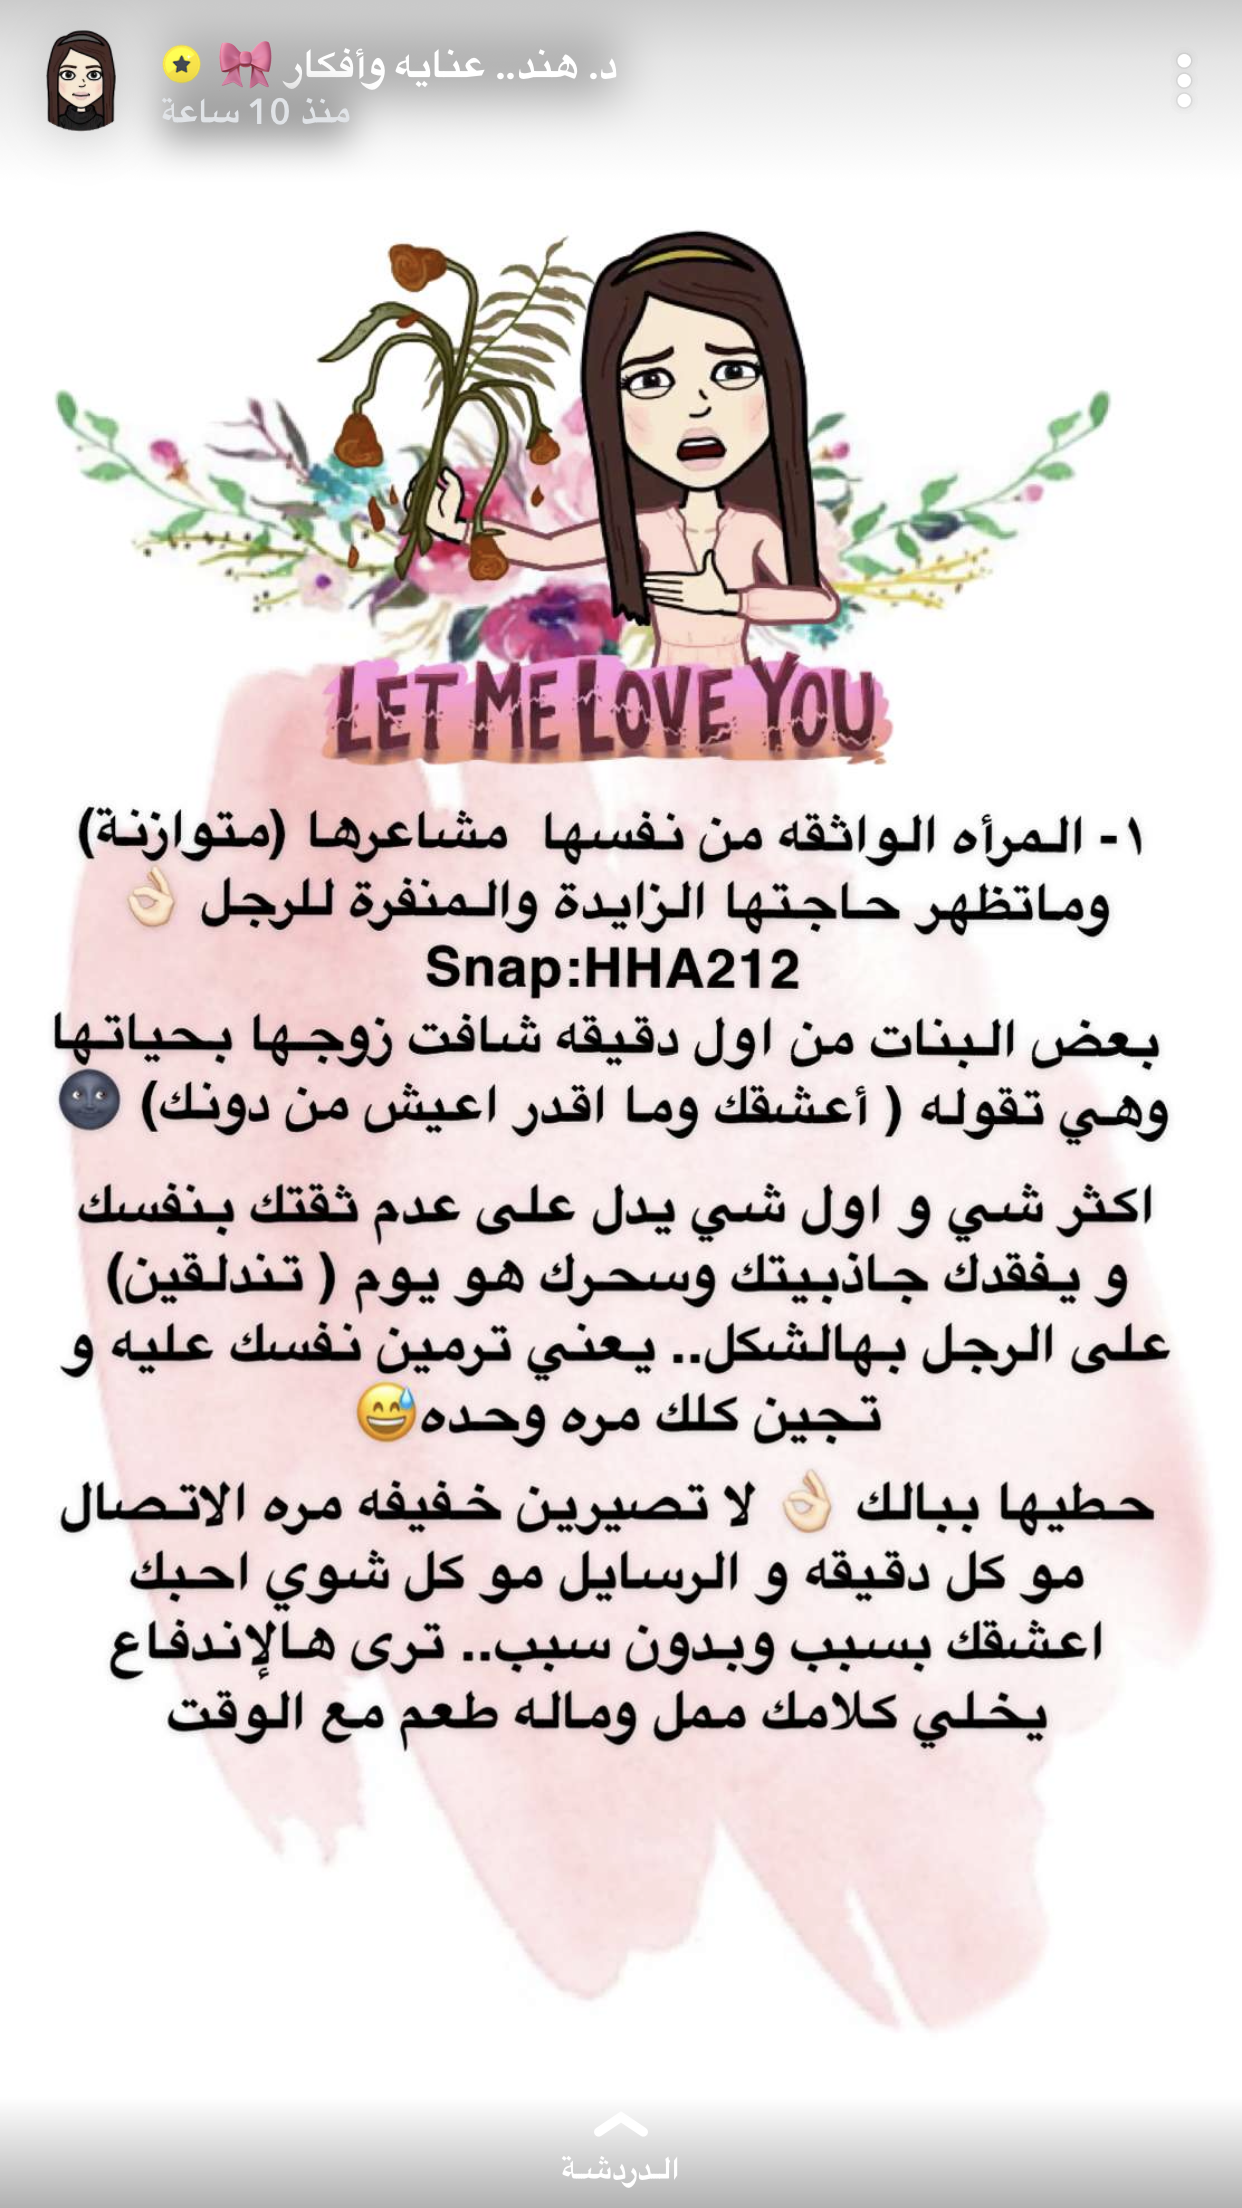 Pin By Alajmimfa On هند عنايه وافكار Life Coach Quotes Married Advice How To Improve Relationship